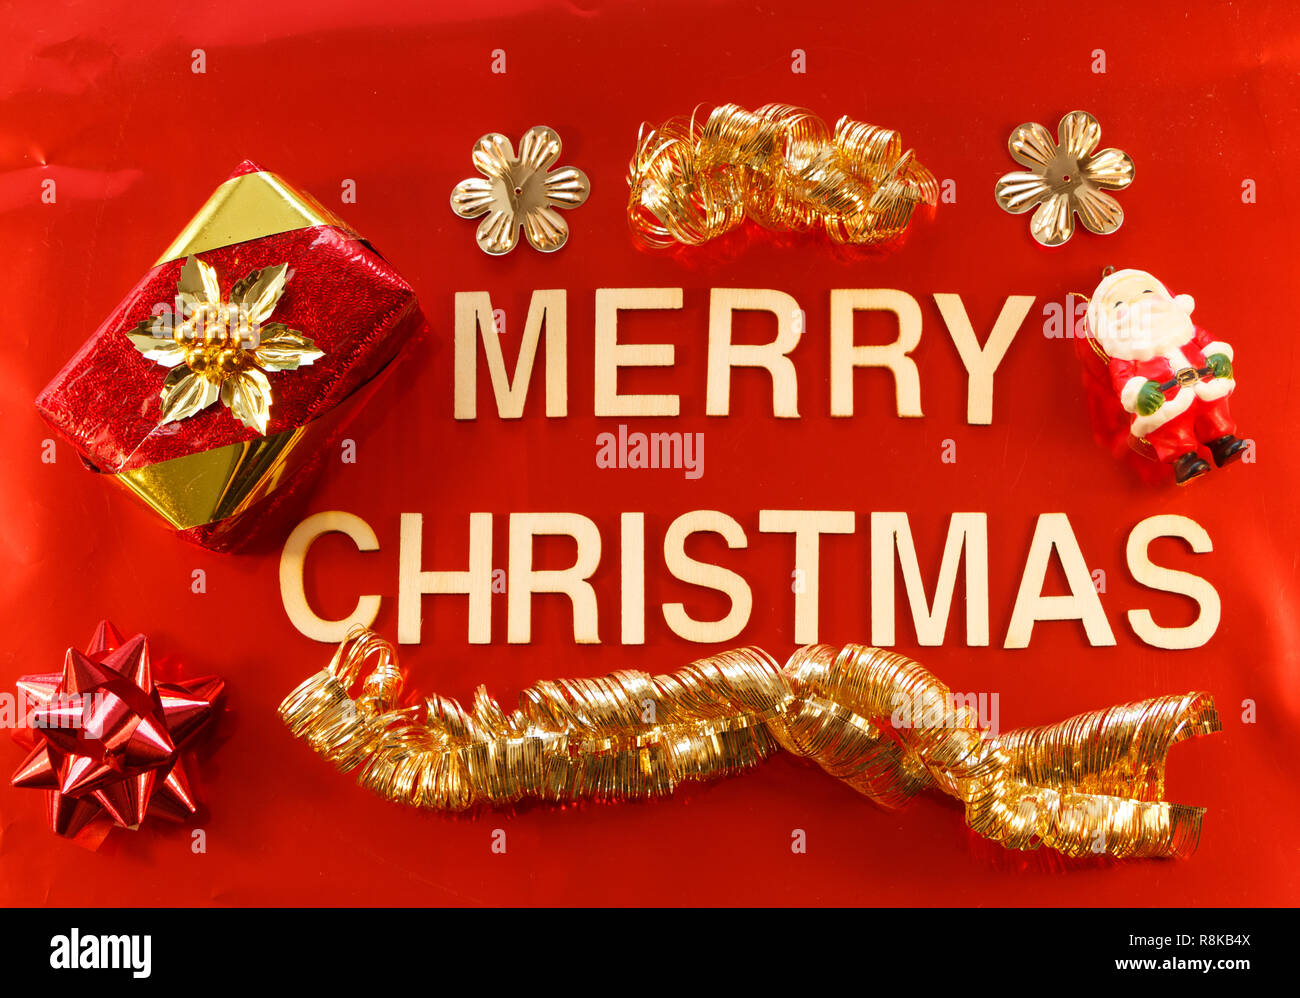 Merry Christmas Written In Wooden Letters And Christmas Decorations